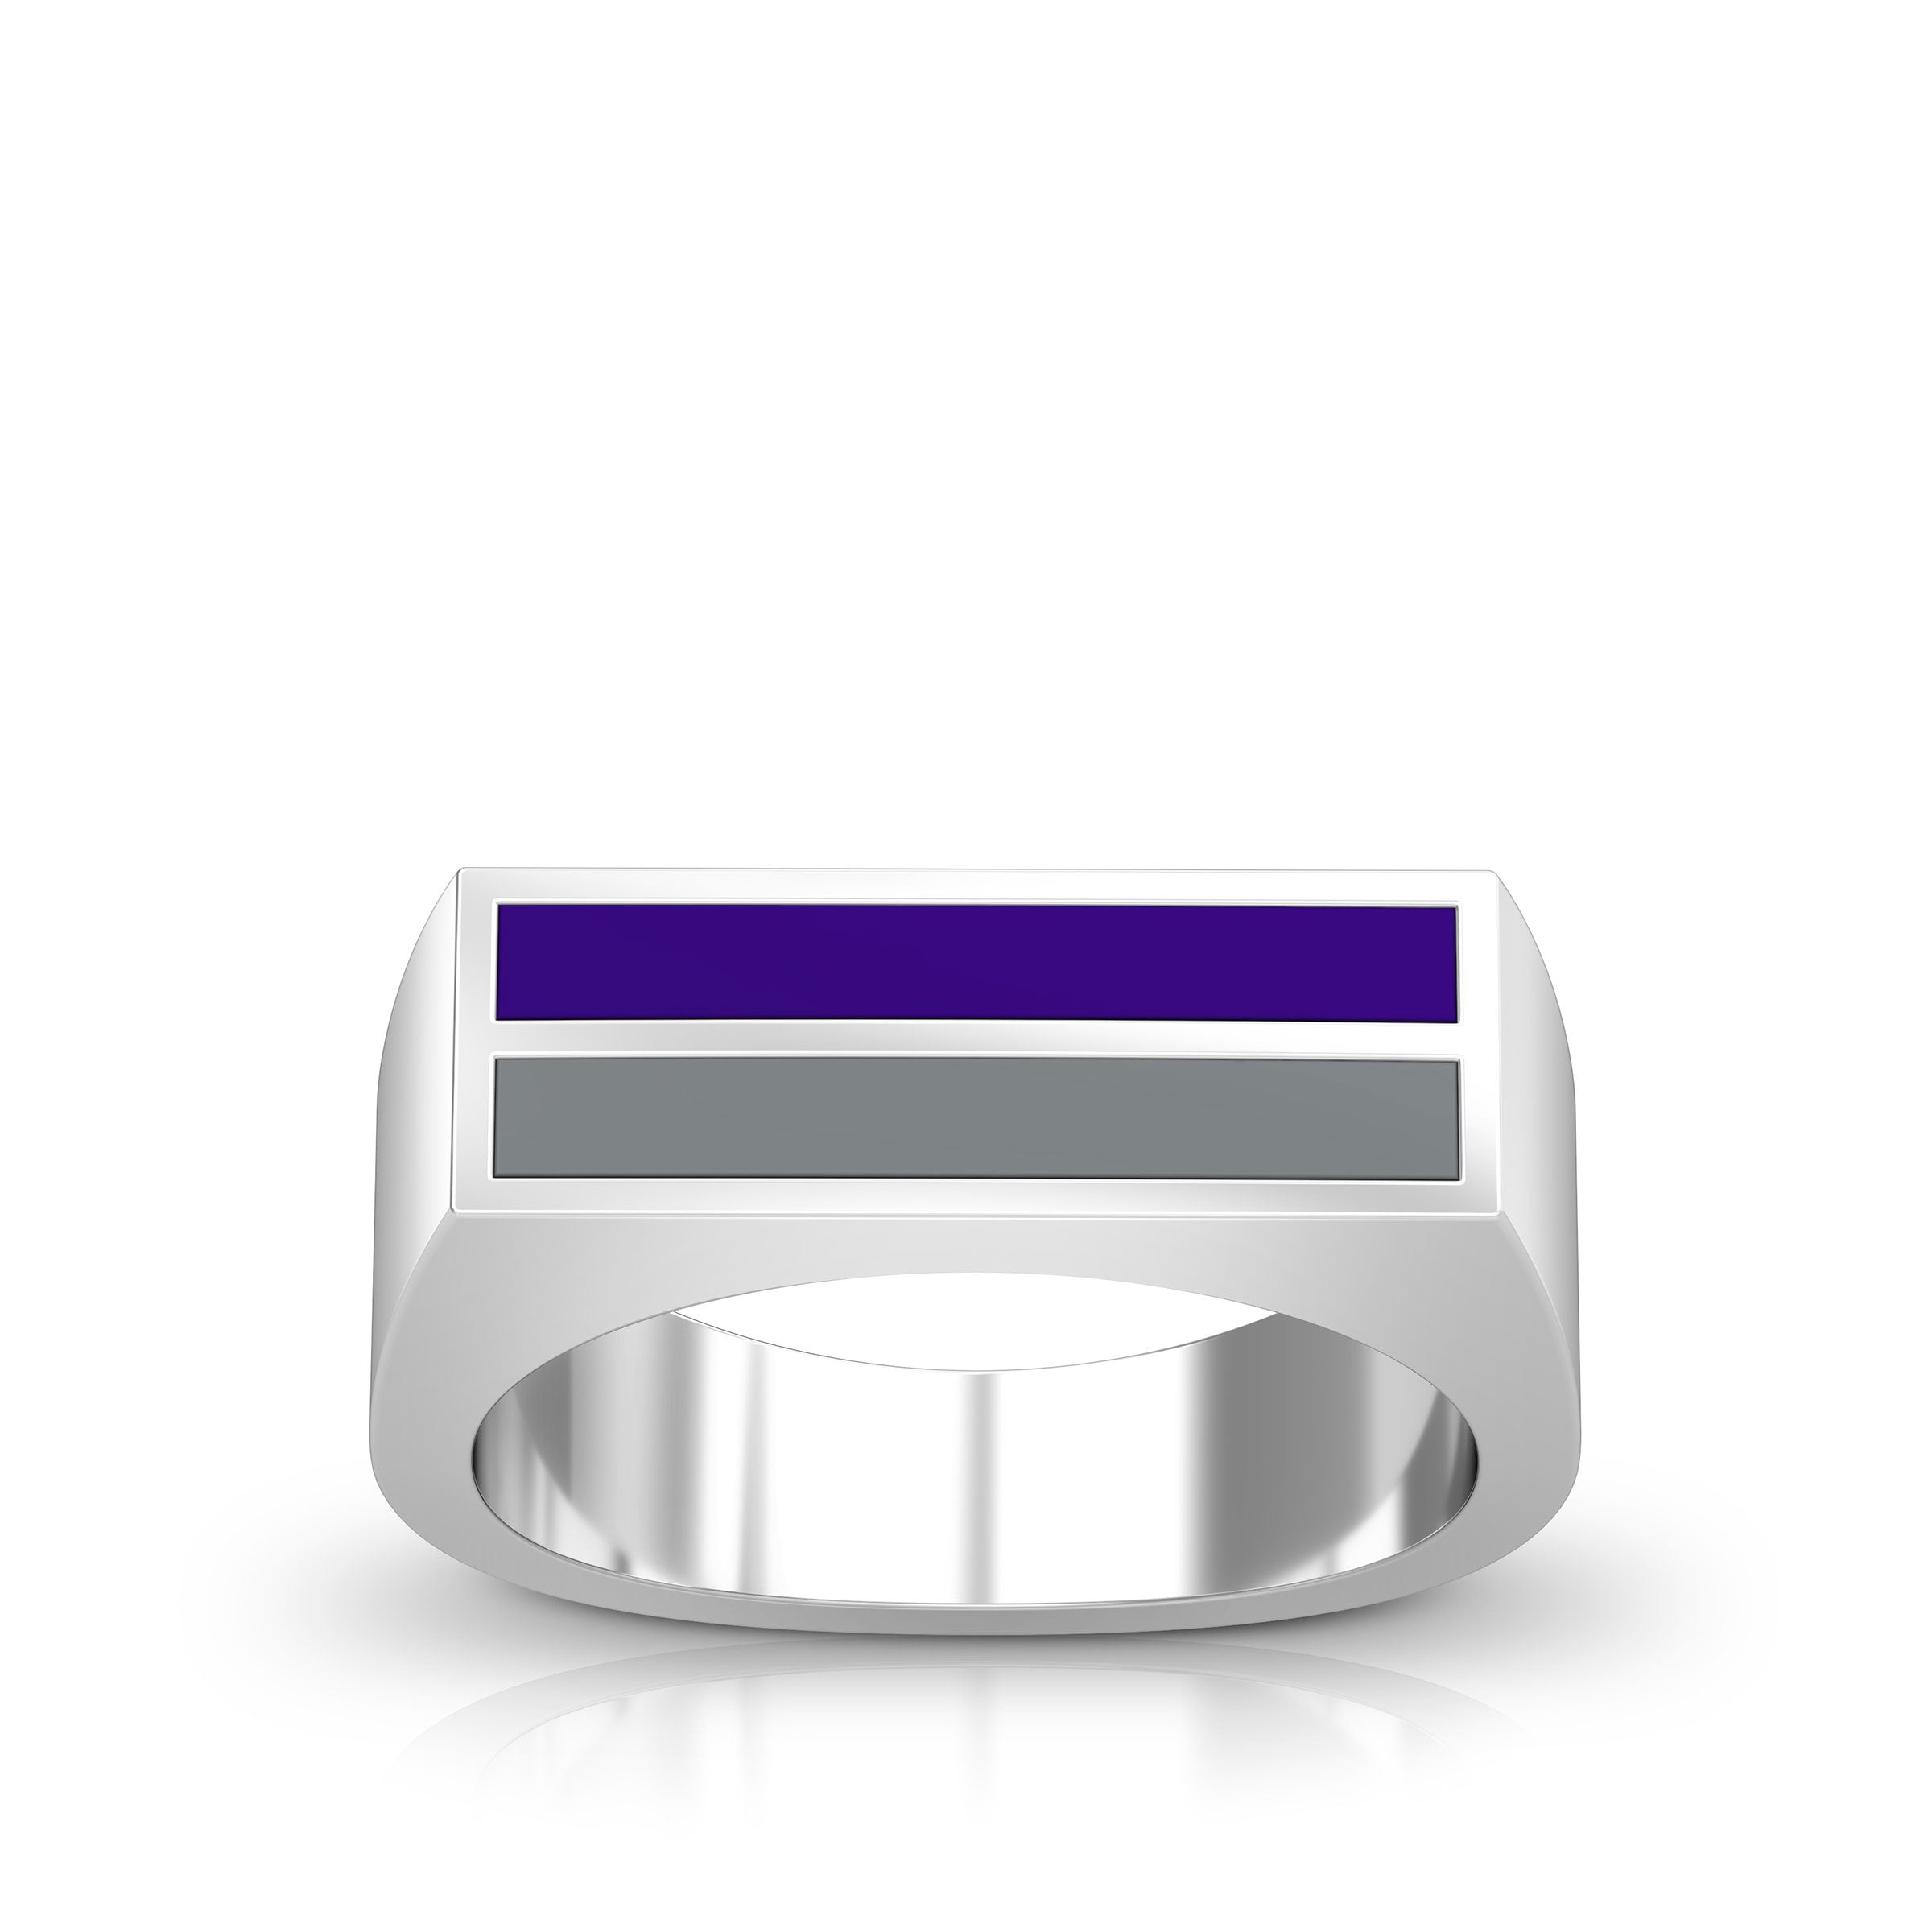 Enamel Ring in Purple and Light Grey Size 12